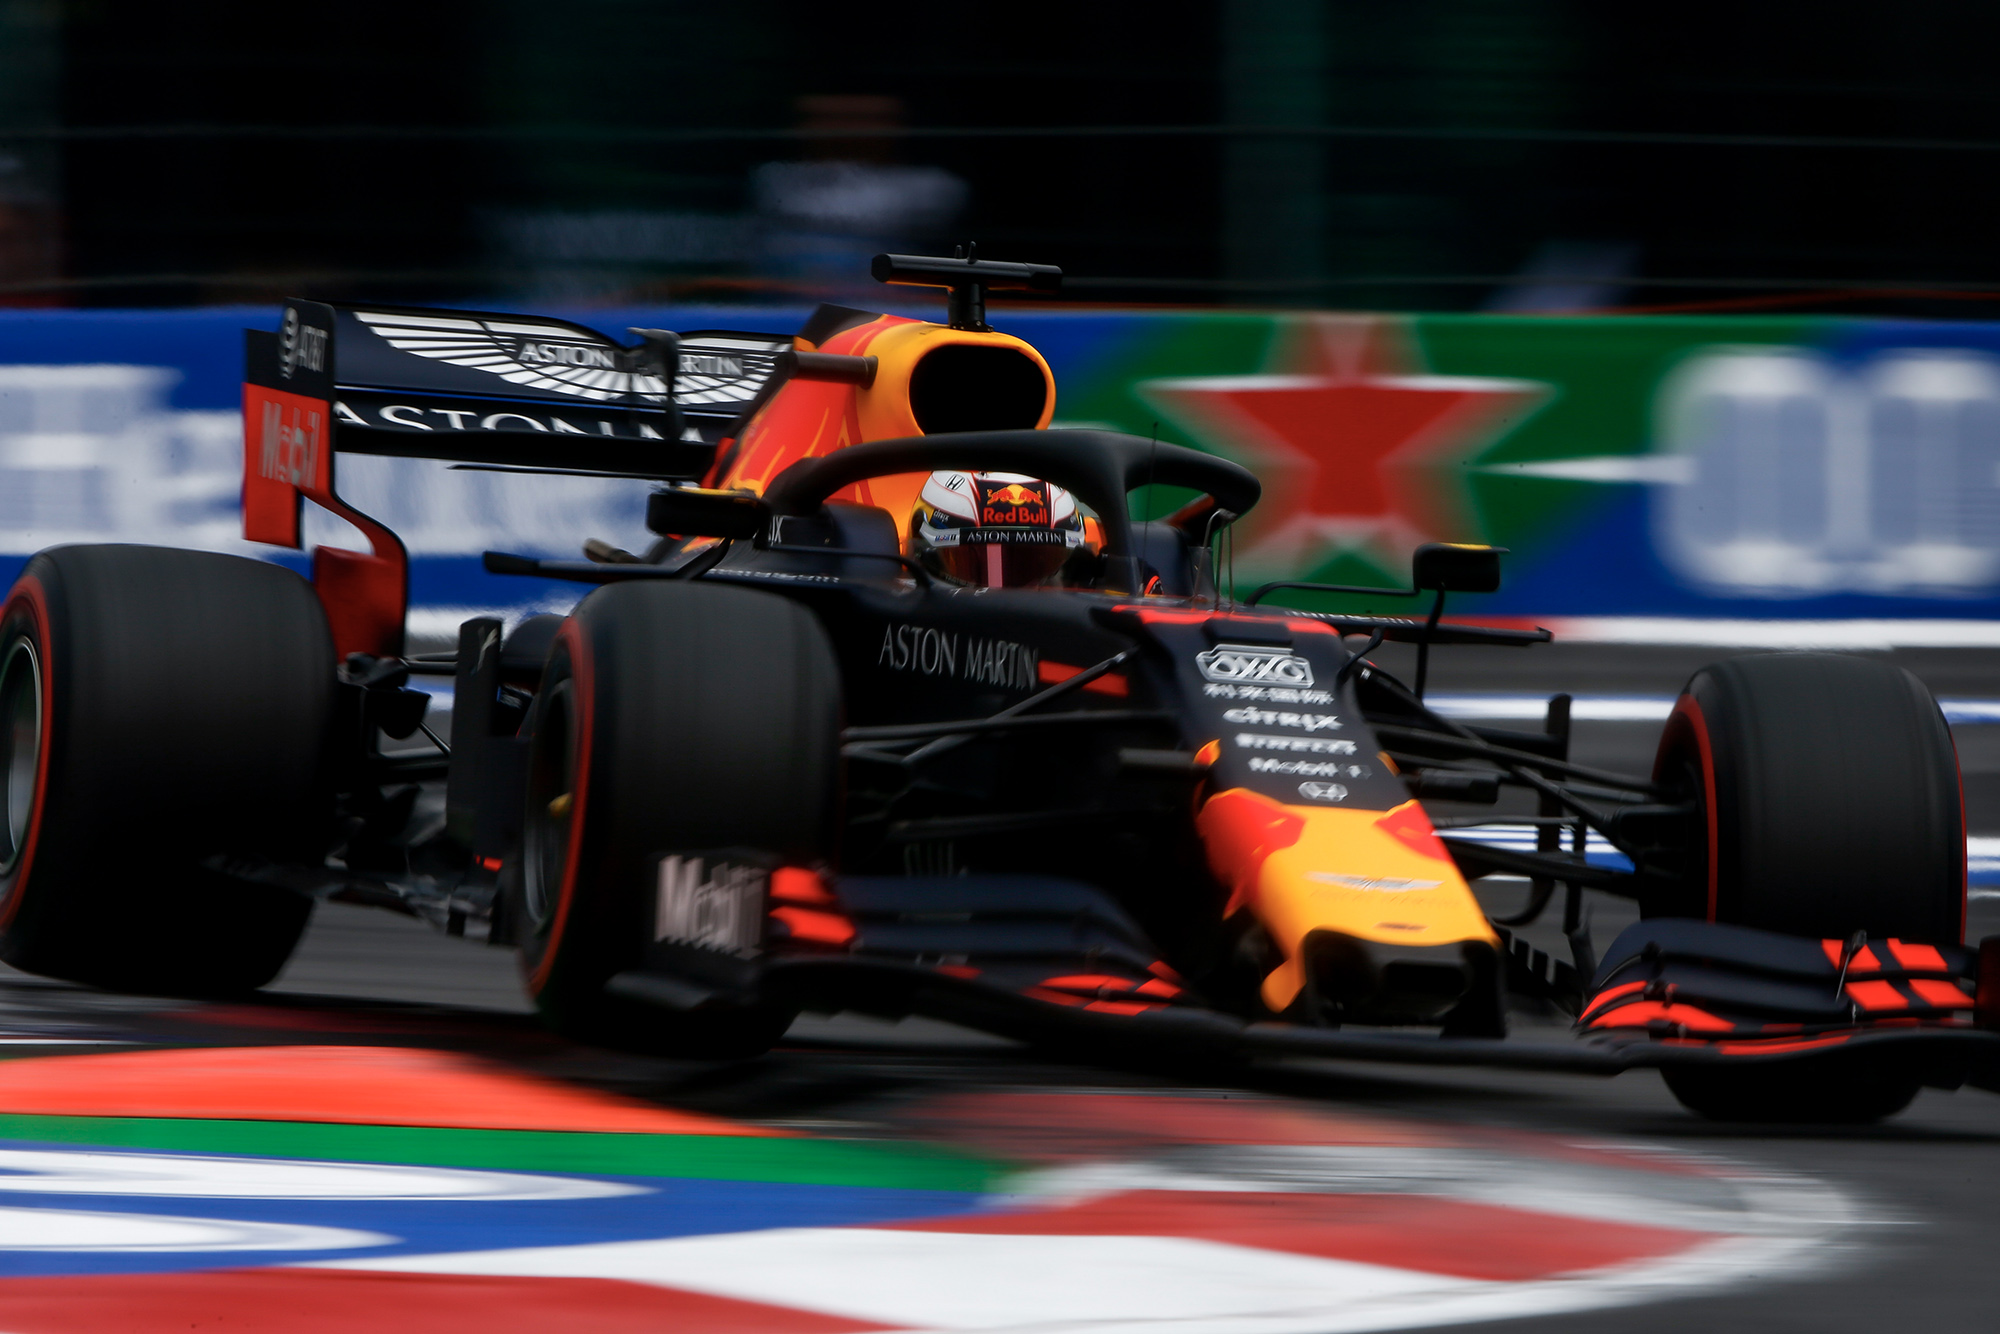 Verstappen penalty strips him of pole: 2019 Mexican Grand Prix qualifying